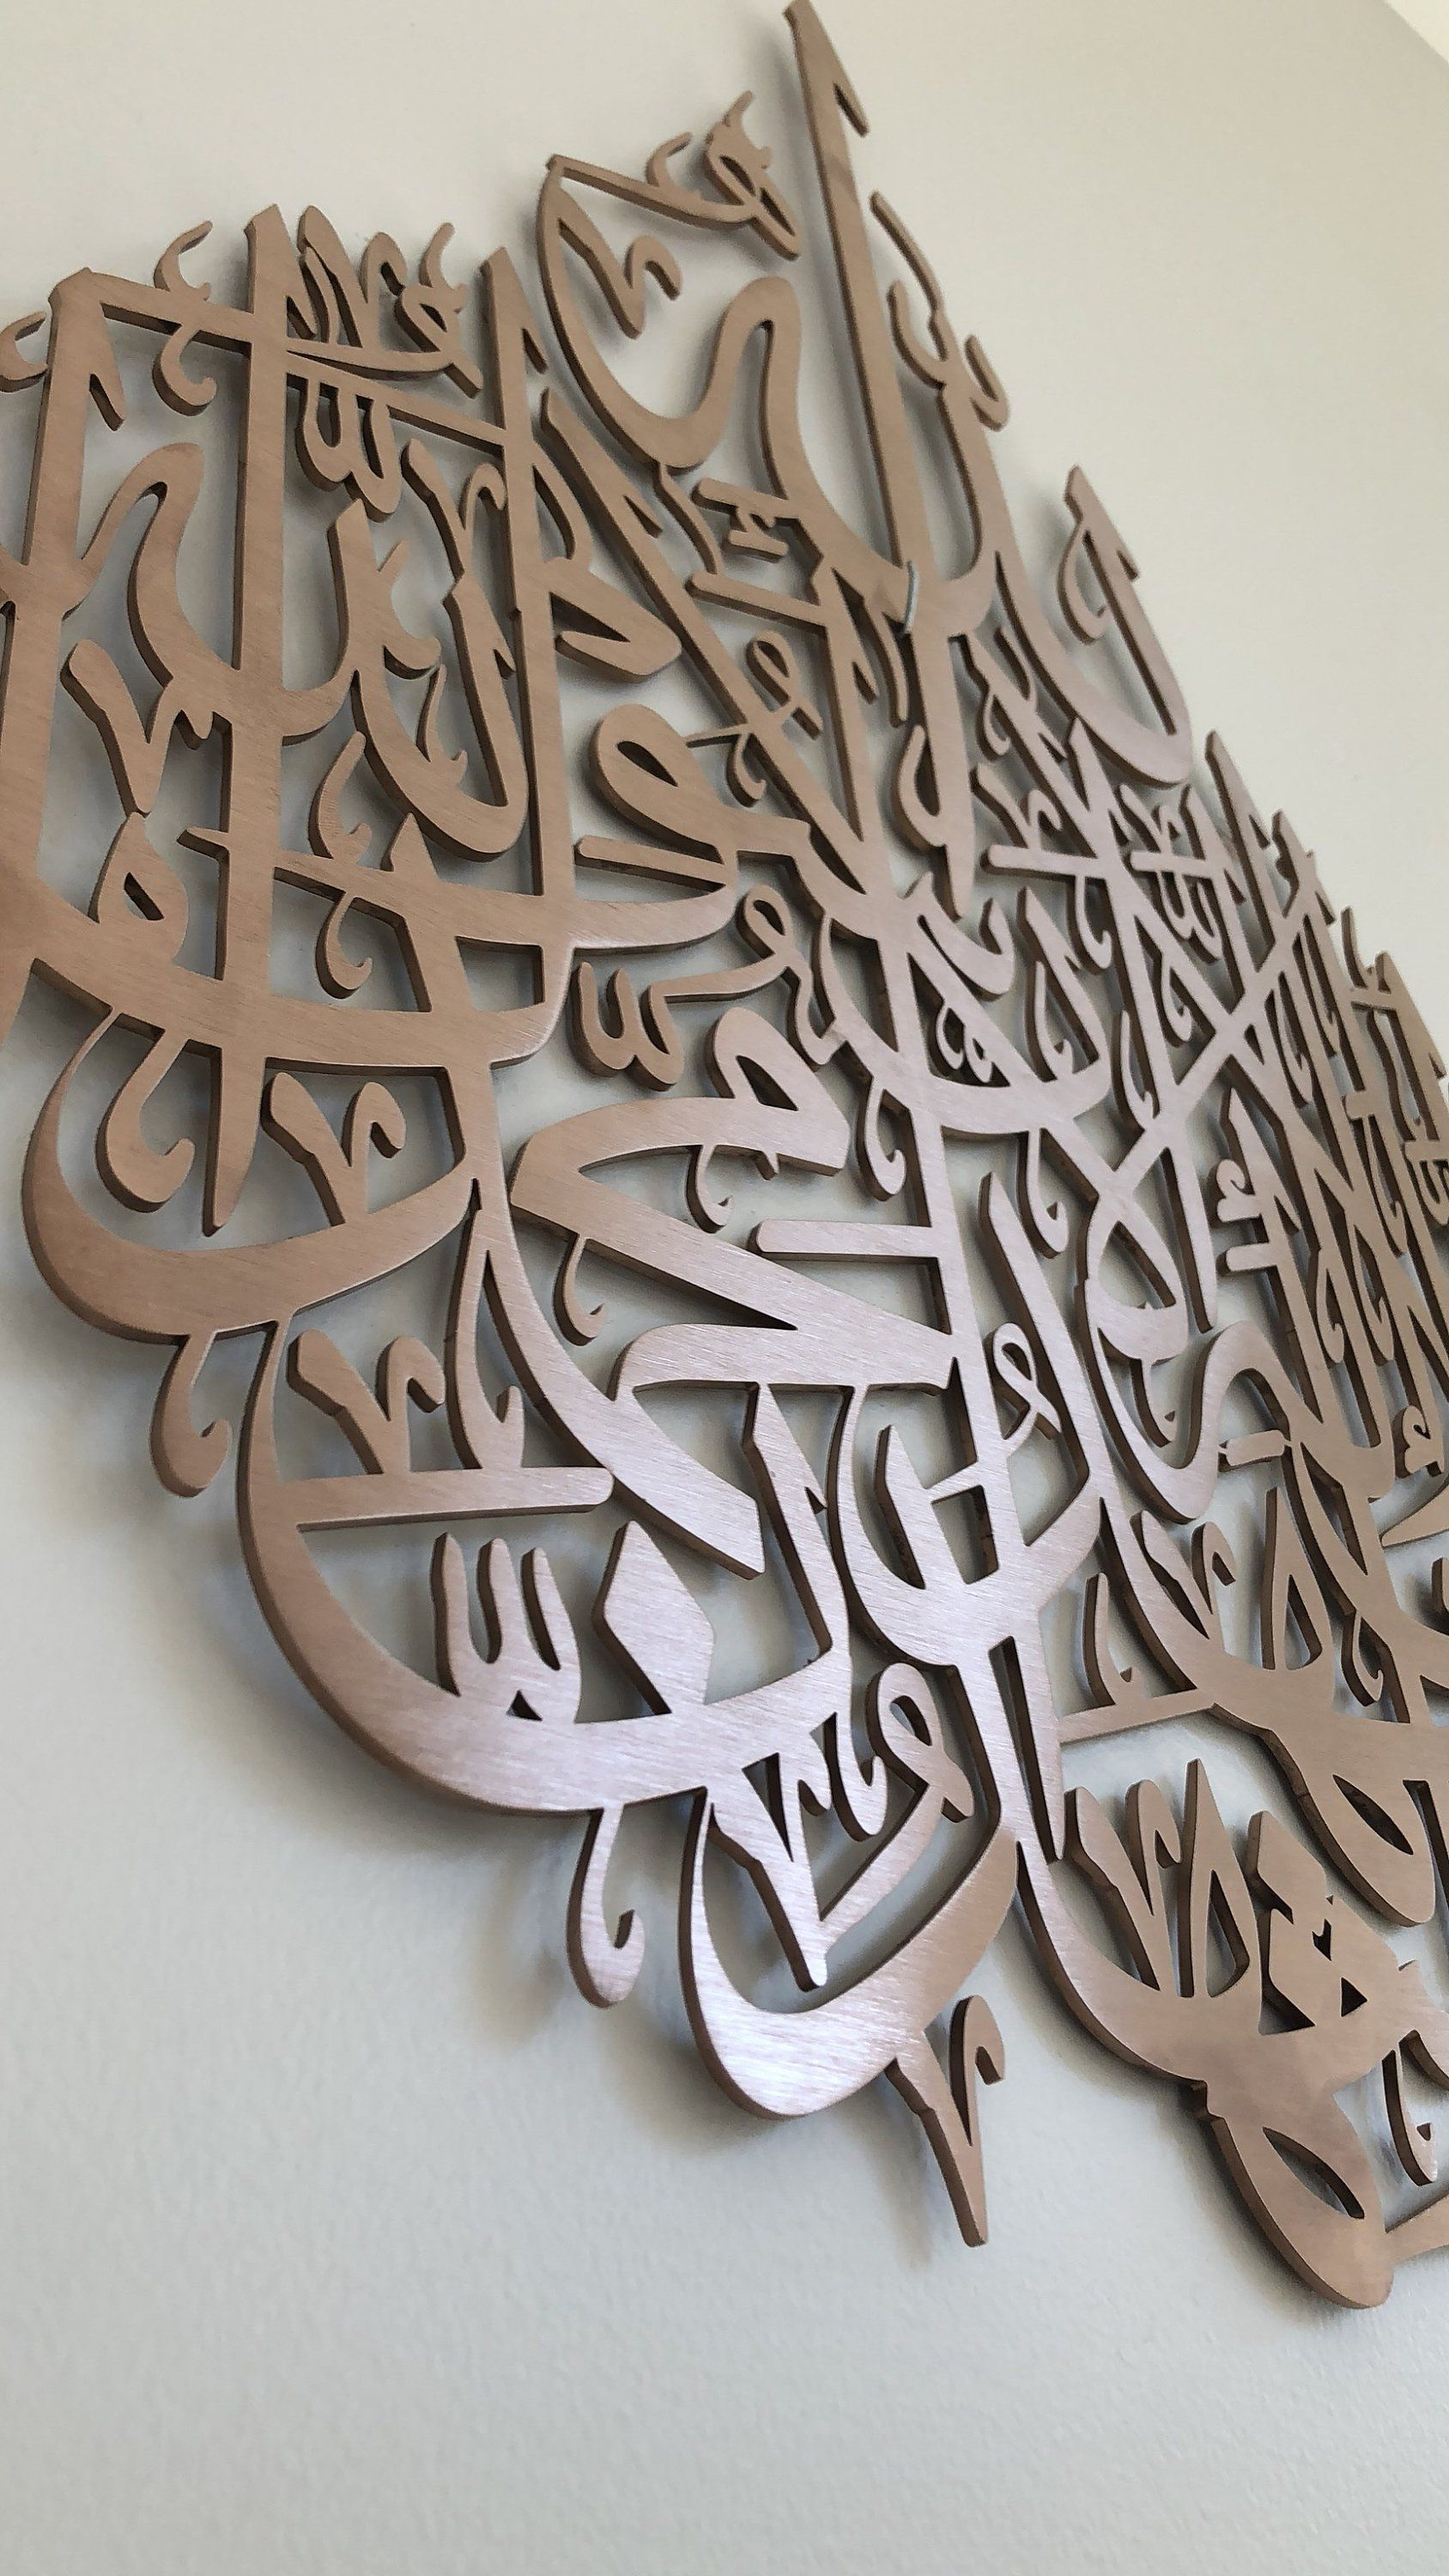 Pin By Modern Wall Arts On Modern Wall Art Stainless Steel Pieces Arabic Calligraphy Art Wall Art Uk Calligraphy Art